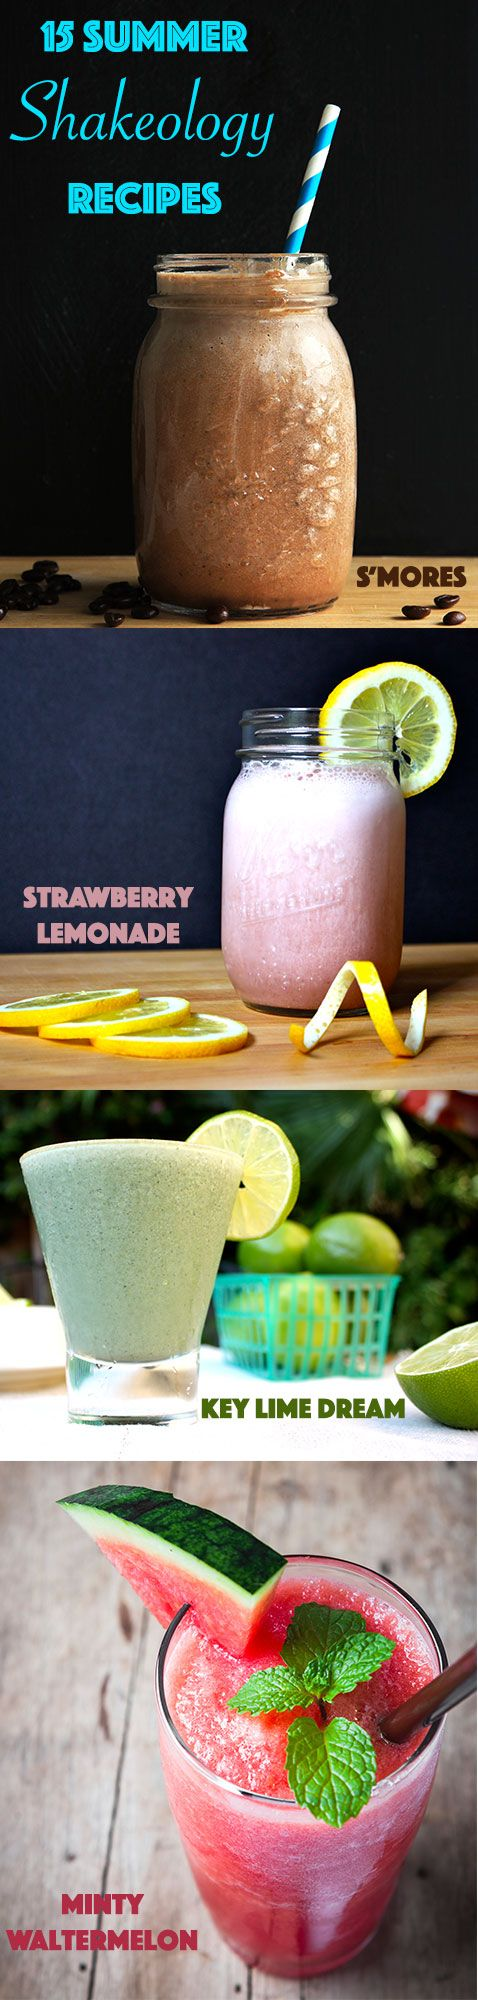 Don't let summer end before trying at least one of these 15 delicious Shakeology smoothies! // 21 Day Fix // 21 Day Fix Approved // fitness // fitspo  motivation // Meal Prep //  Meal Plan // Sample Meal Plan// diet // nutrition // Inspiration // fitfood // fitfam // clean eating // Shakeology //smoothie // smoothie recipes